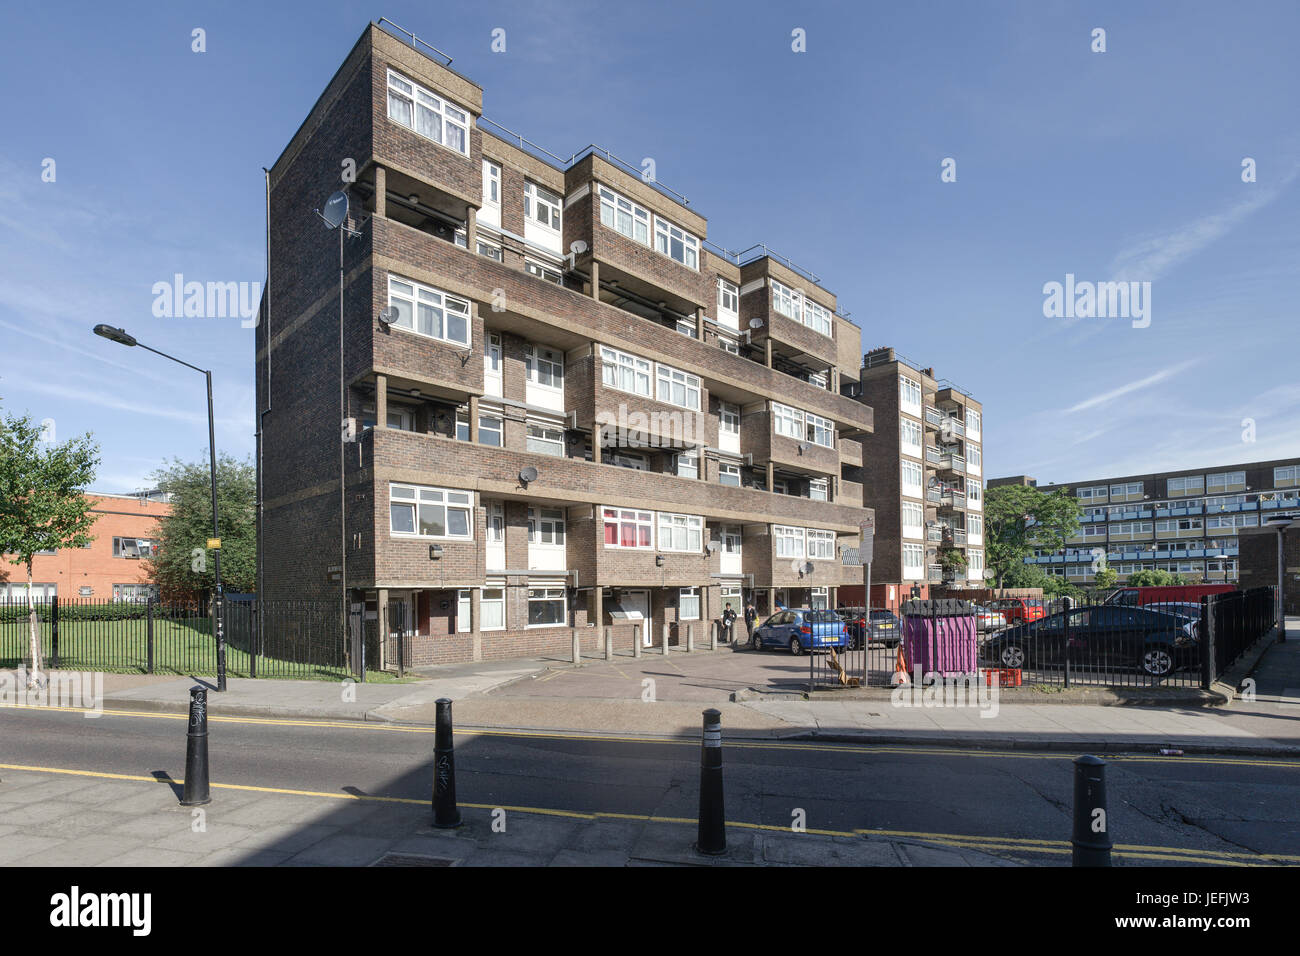 Blomfield House, Old Montague Street in Whitechapel, London a fine example of 1960s local authority housing still - Stock Image